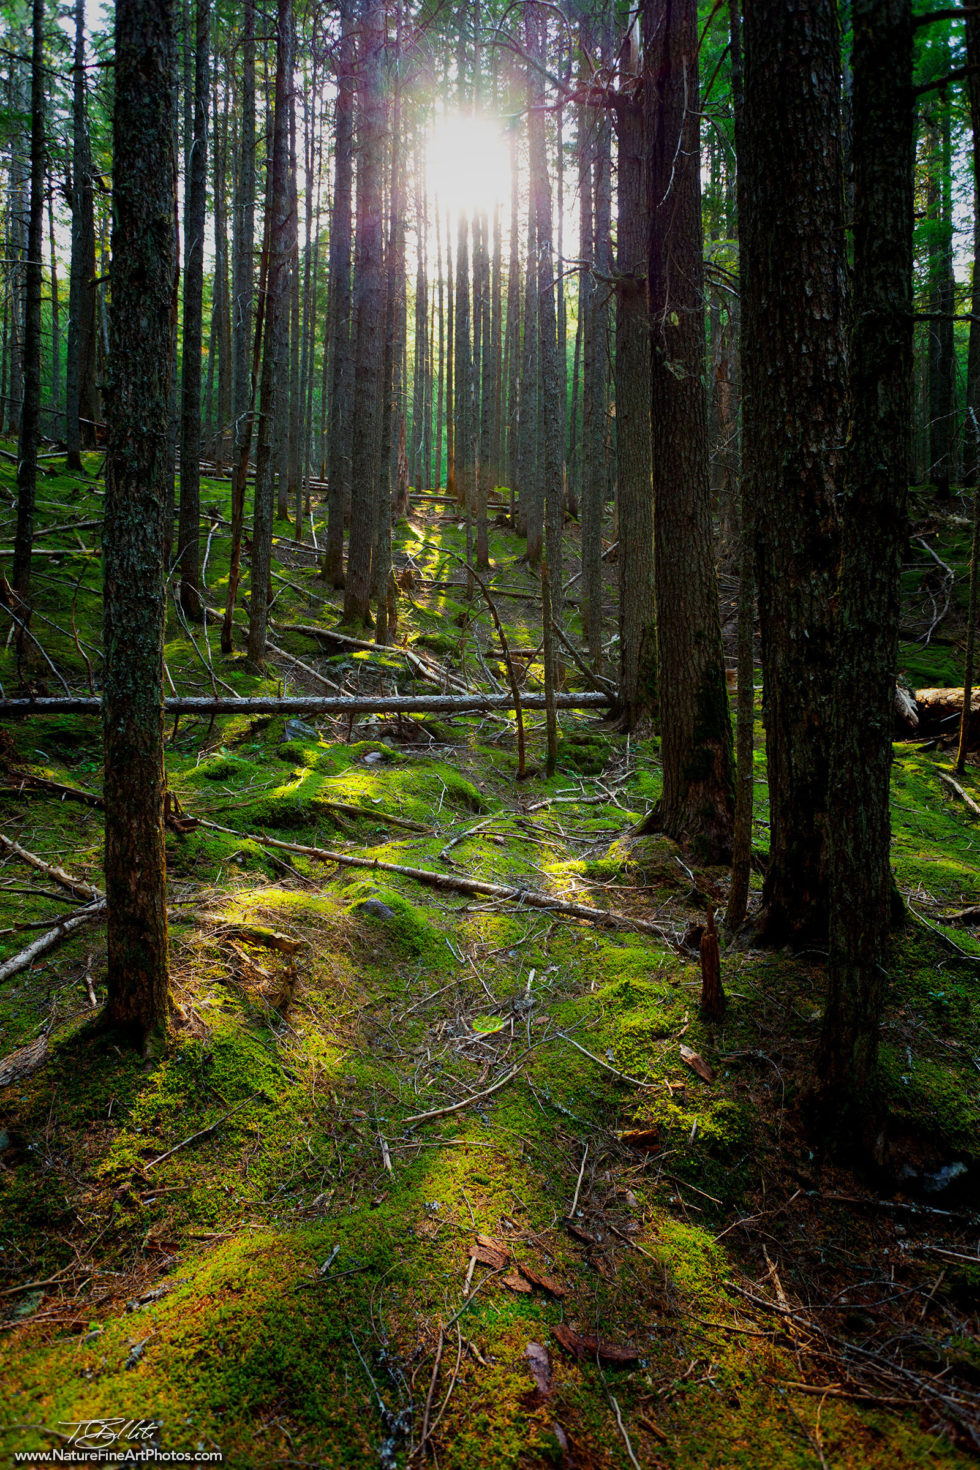 Nature Photo of the Enchanted Forest in Glacier National Park